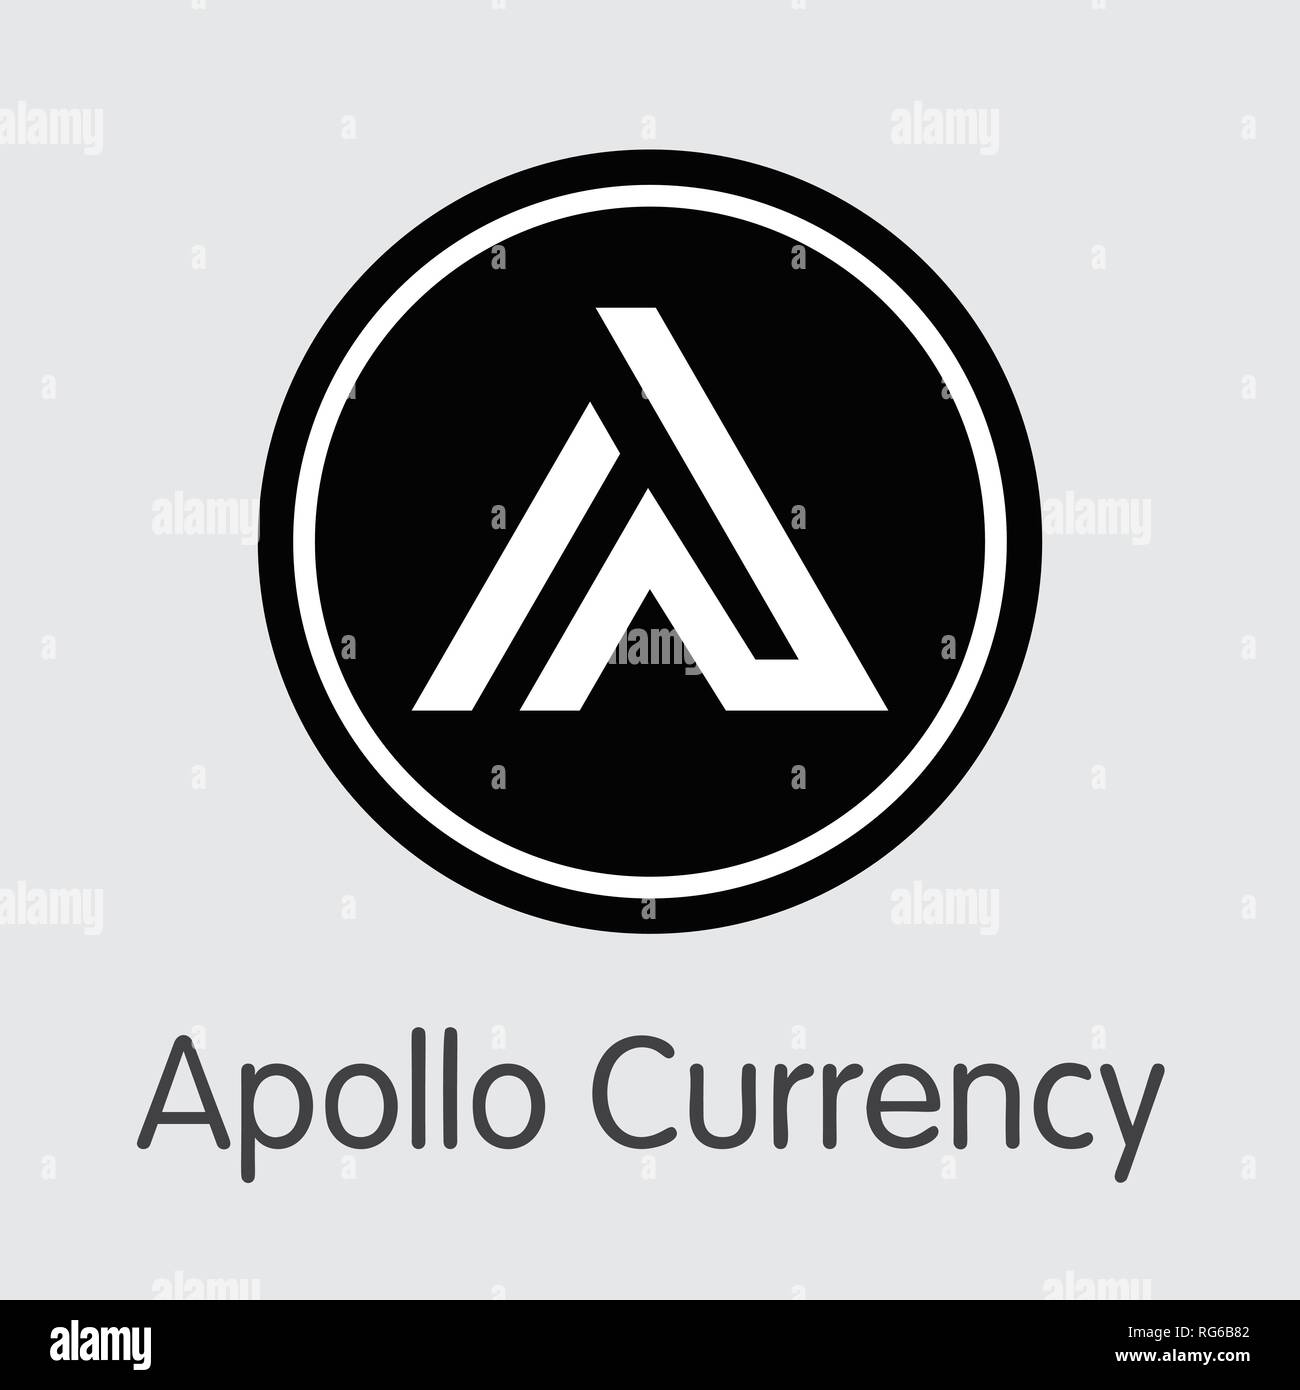 APL - Apollo Currency. The Icon of Coin or Market Emblem. - Stock Vector